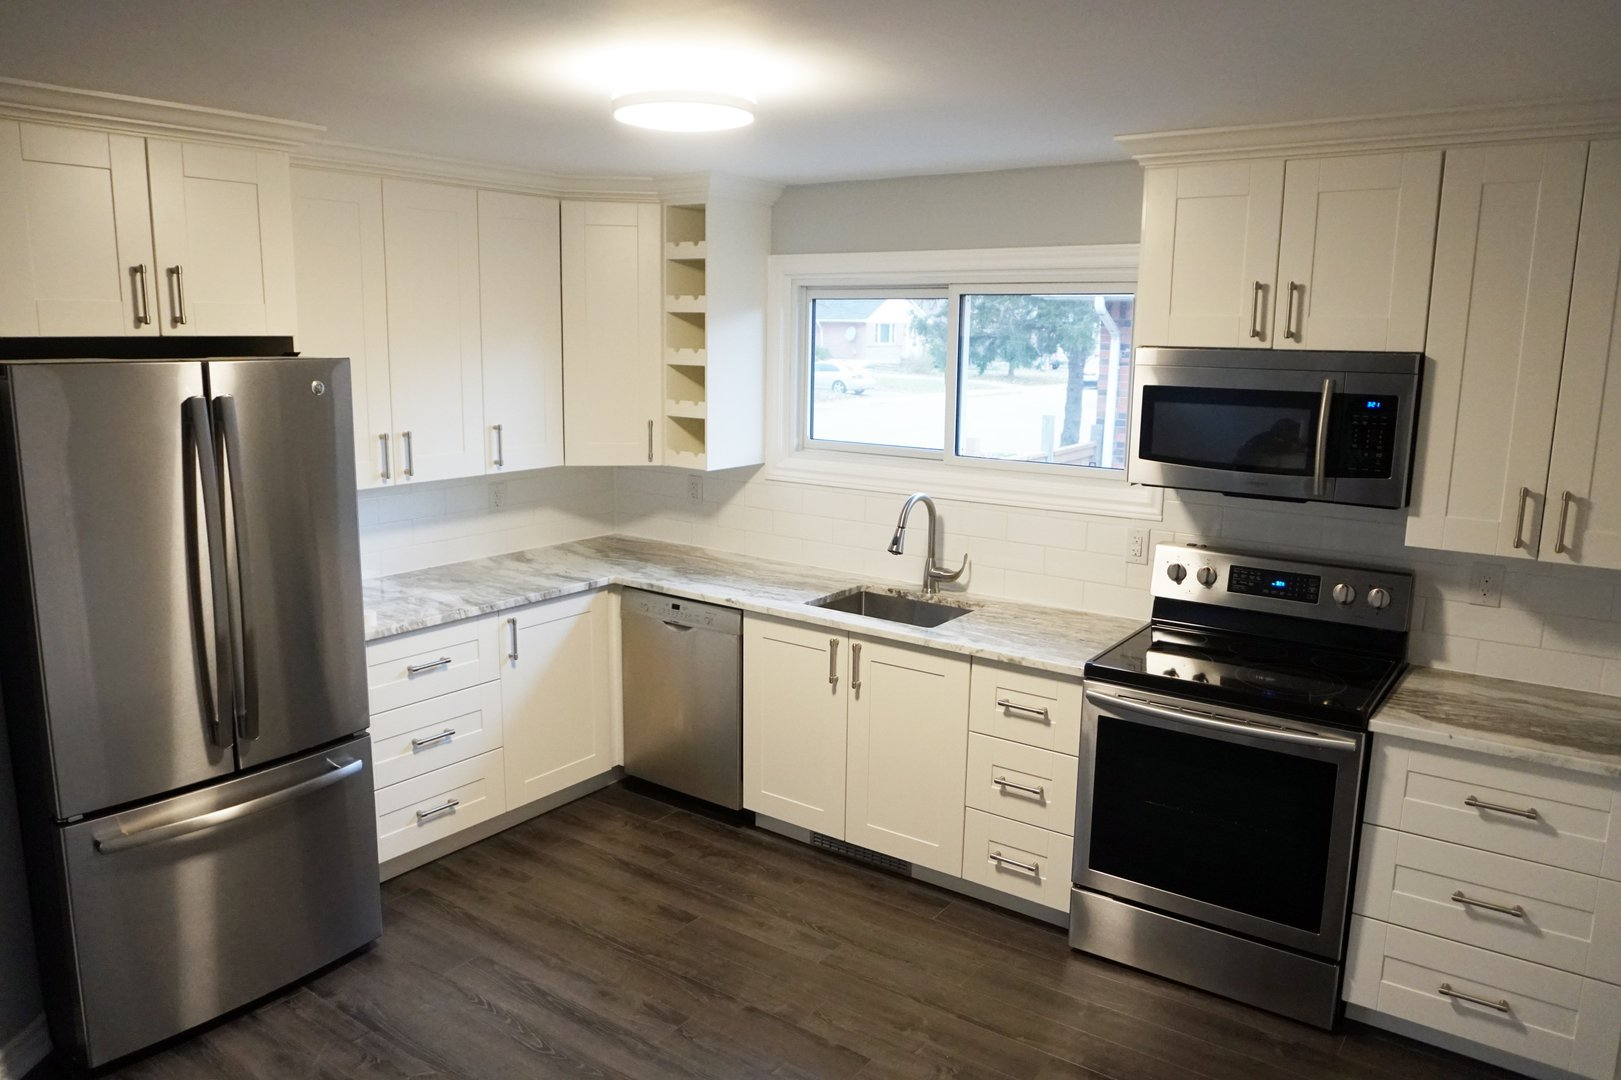 Apartment for rent at 89 David Ave, Hamilton, ON. This is the kitchen with hardwood floor, stainless steel and natural light.